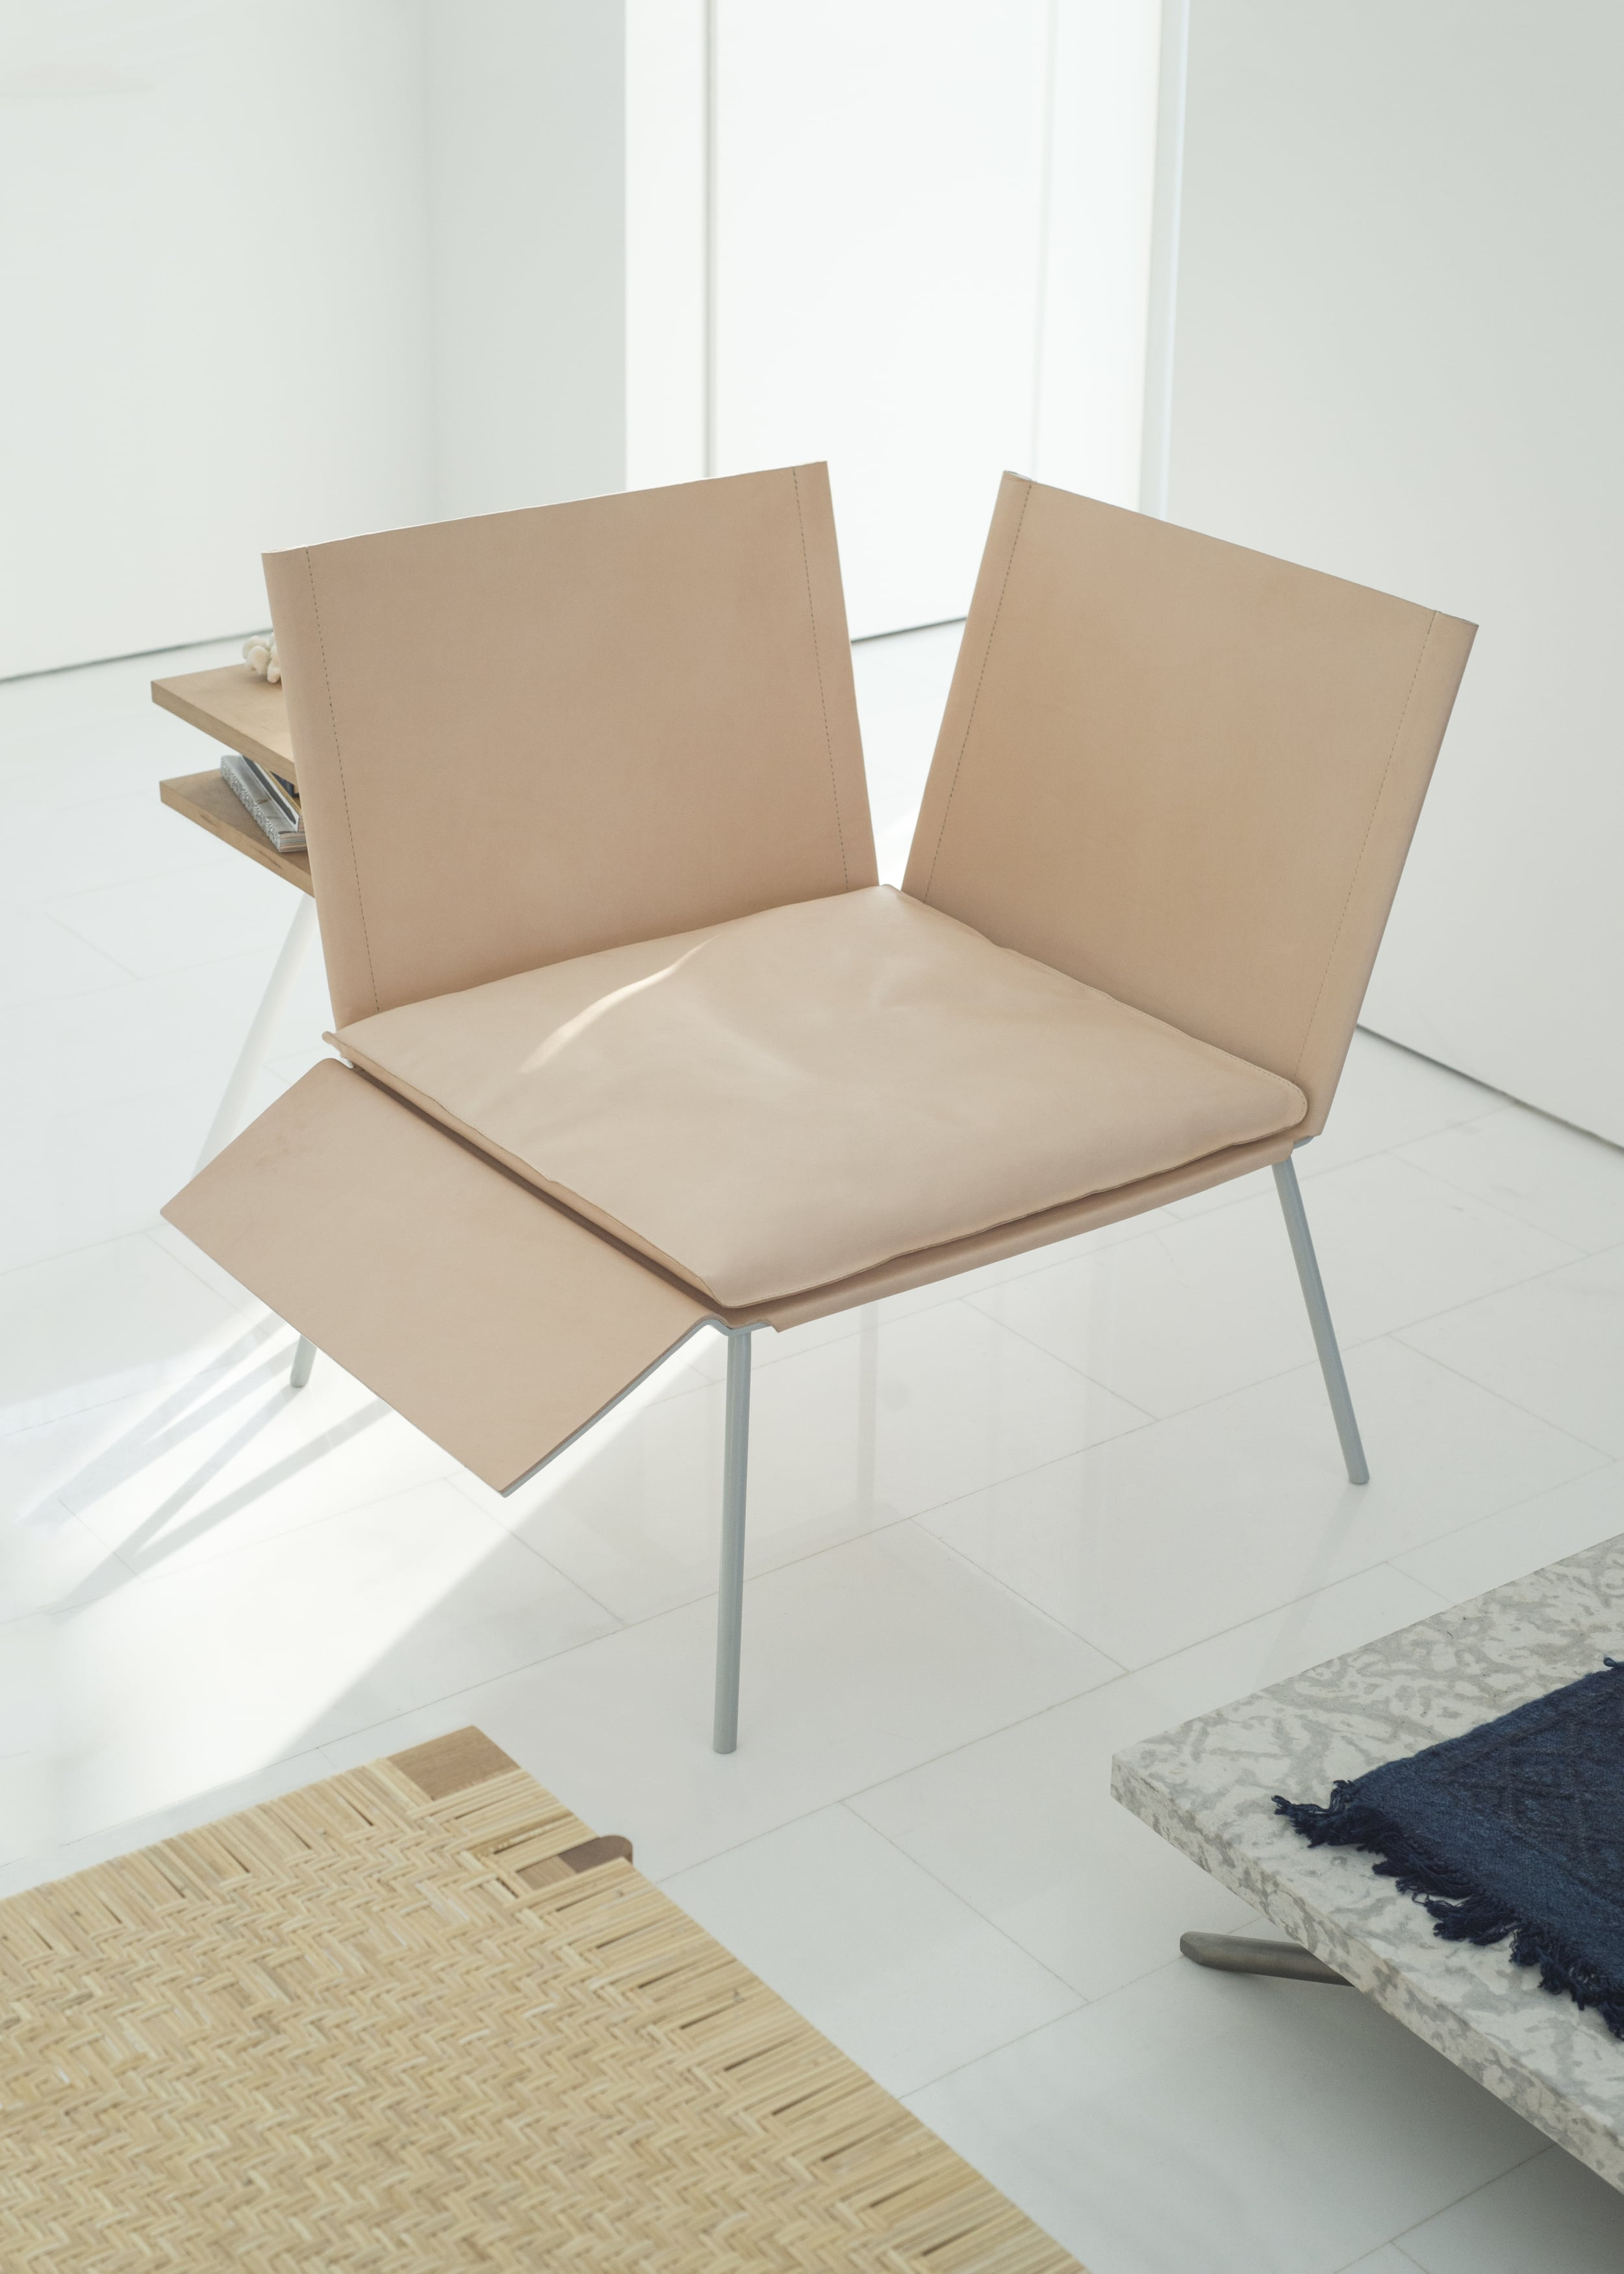 Thom_Fougere_Saddle_Chair